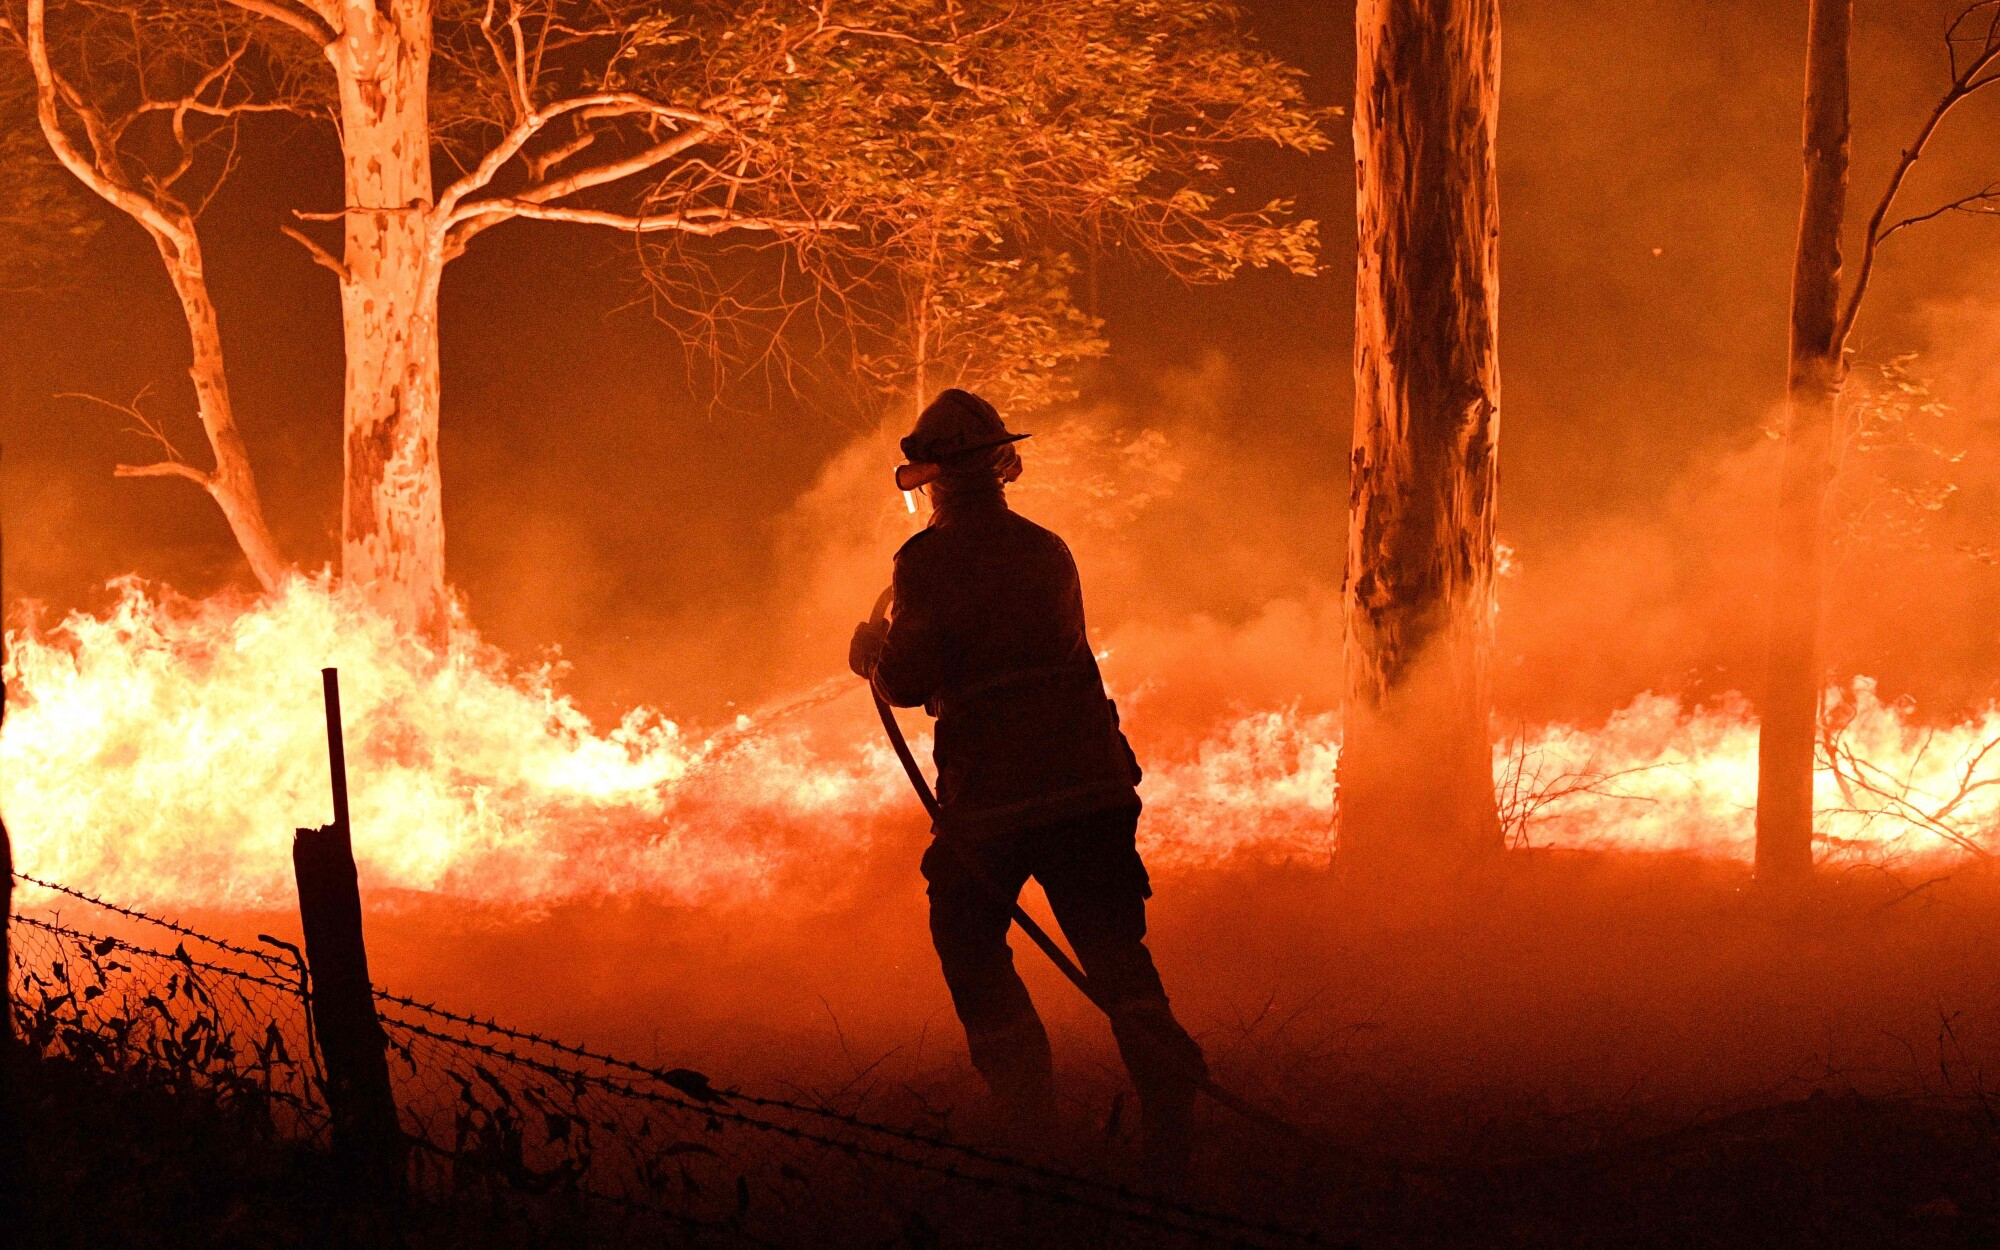 A firefighter hoses down trees and flying embers in an effort to protect nearby houses outside the town of Nowra in the Australian state of New South Wales.